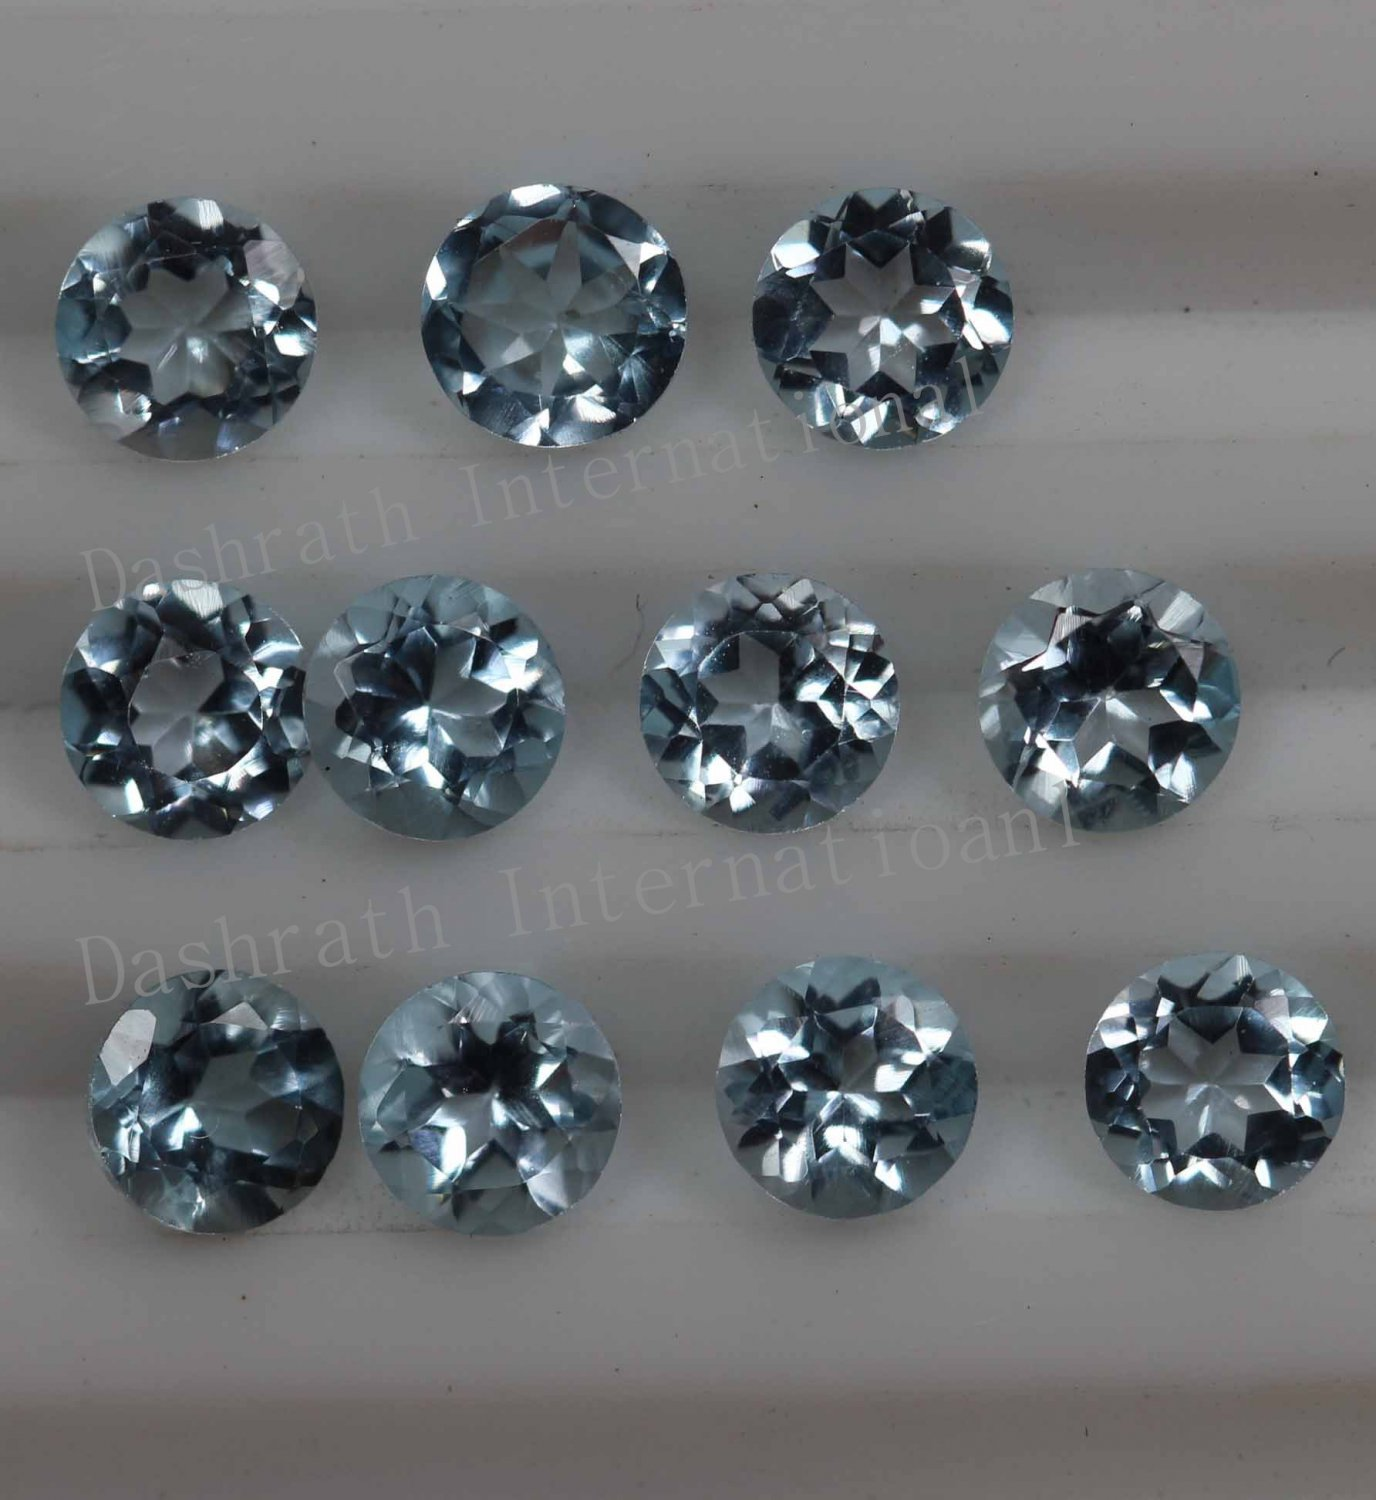 7mmNatural Sky Blue Topaz Faceted Cut Round 25 Pieces Lot Blue Color  Top Quality Loose Gemstone